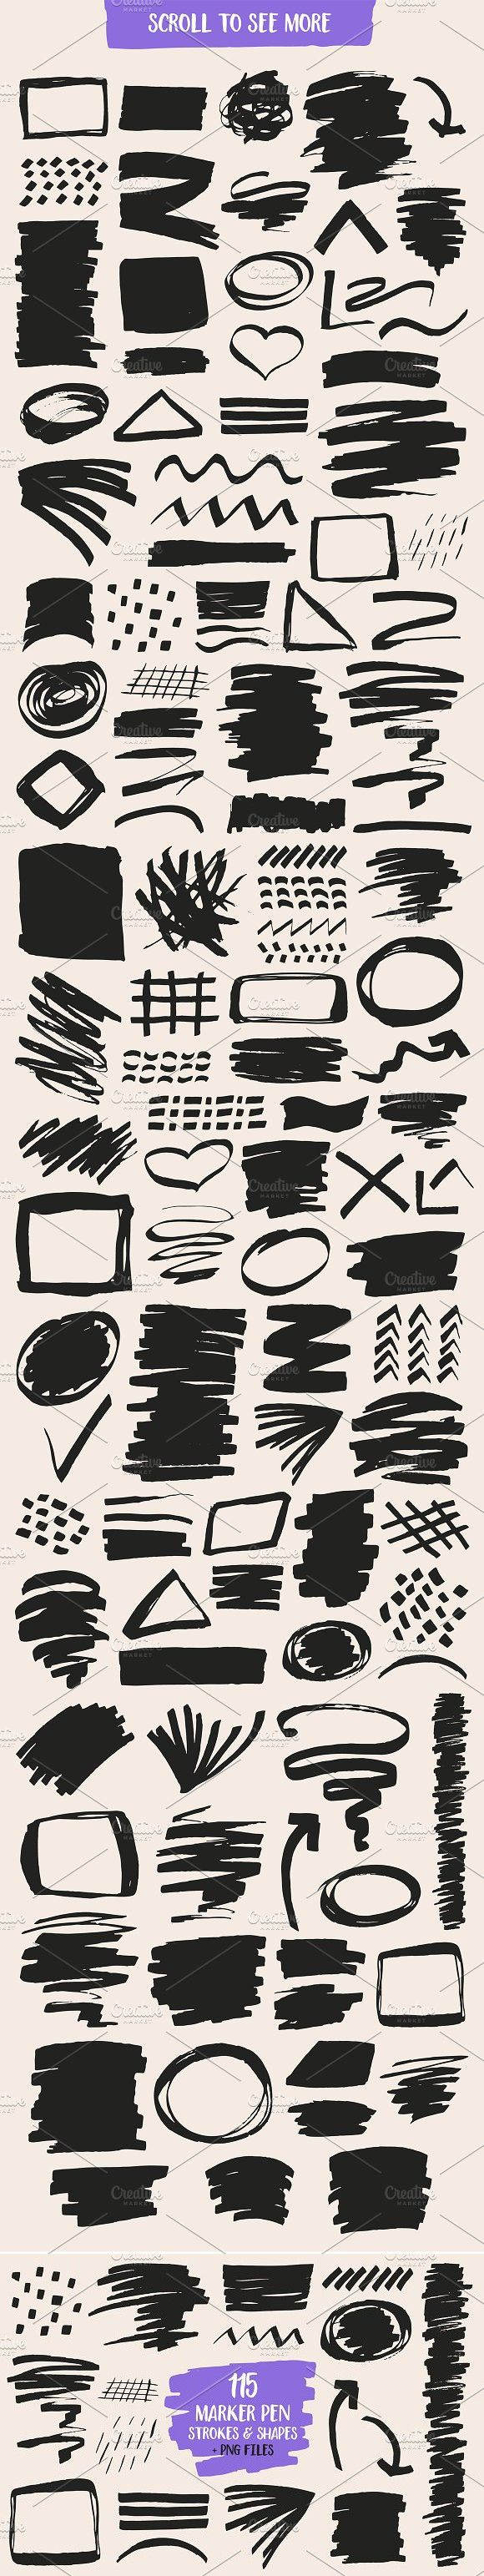 Marker Pen Strokes And Shapes Marker Pen Markers Shapes